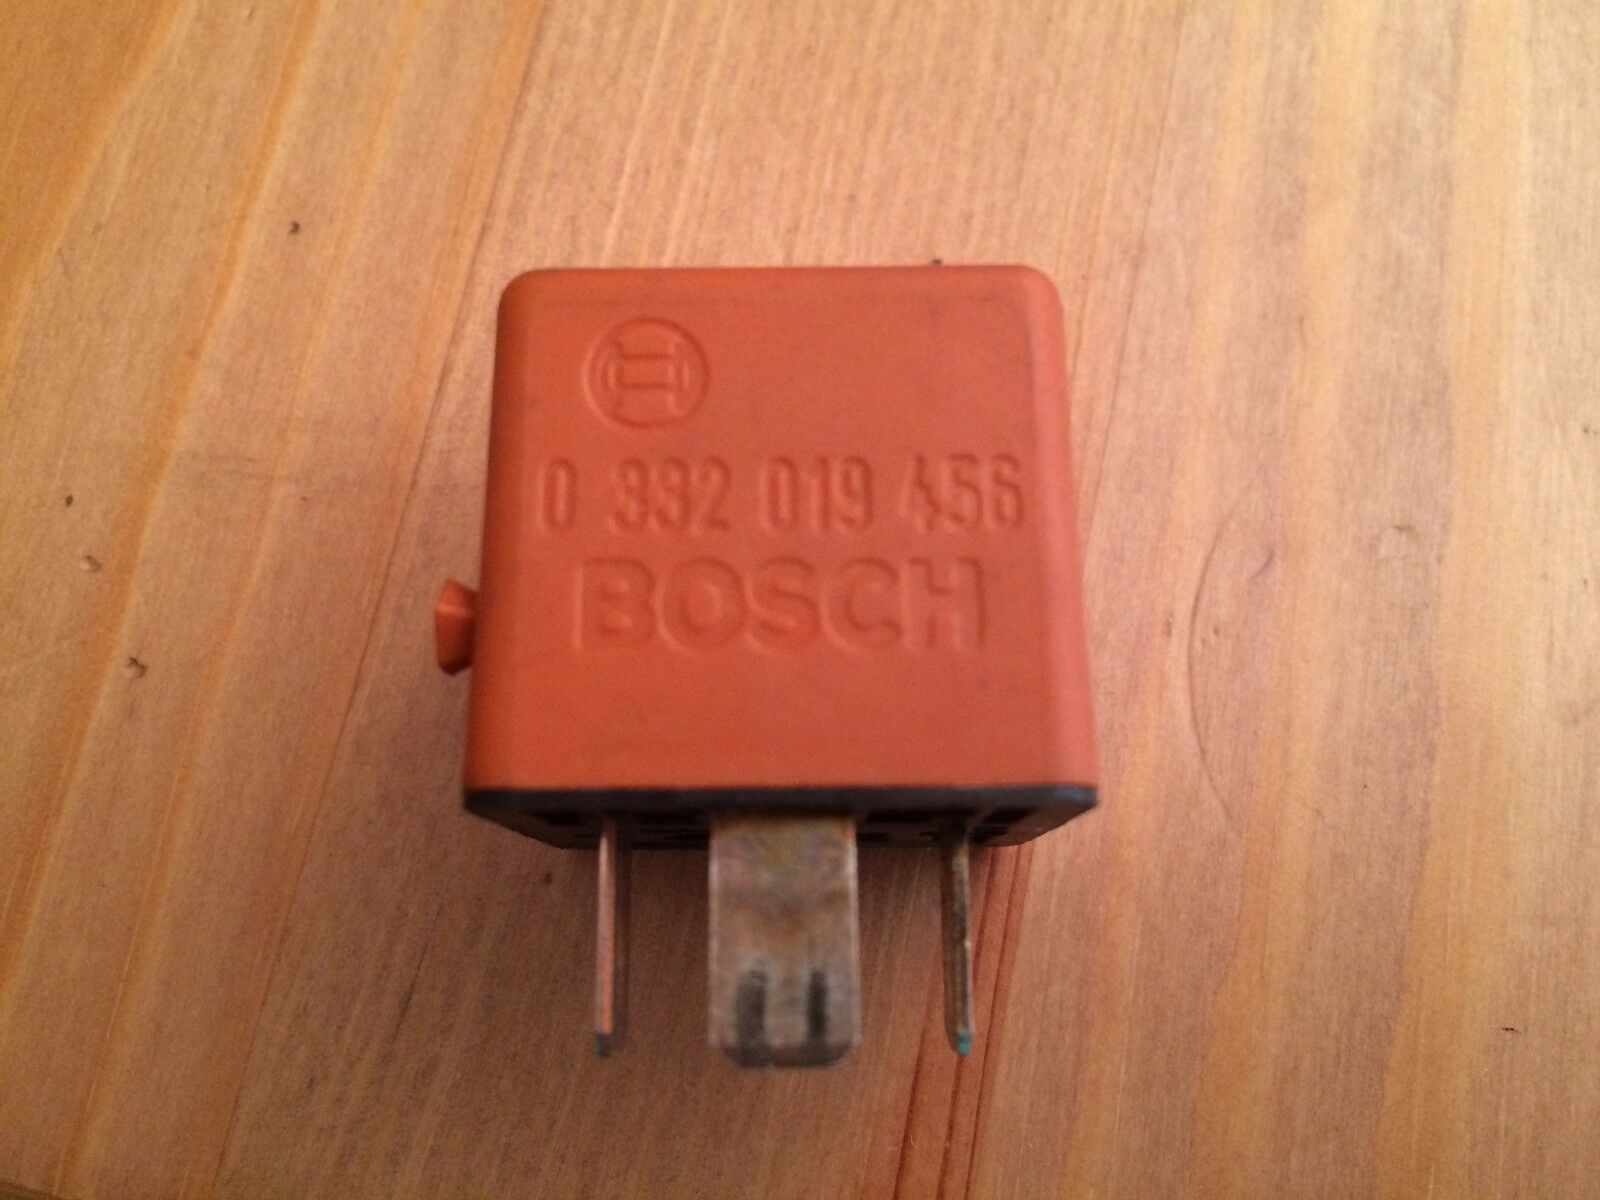 Bmw Orange Relay Bosch 12v 4 Pin 30a 0332019456 1378238 700 Prong Flasher 1 Of 5free Shipping